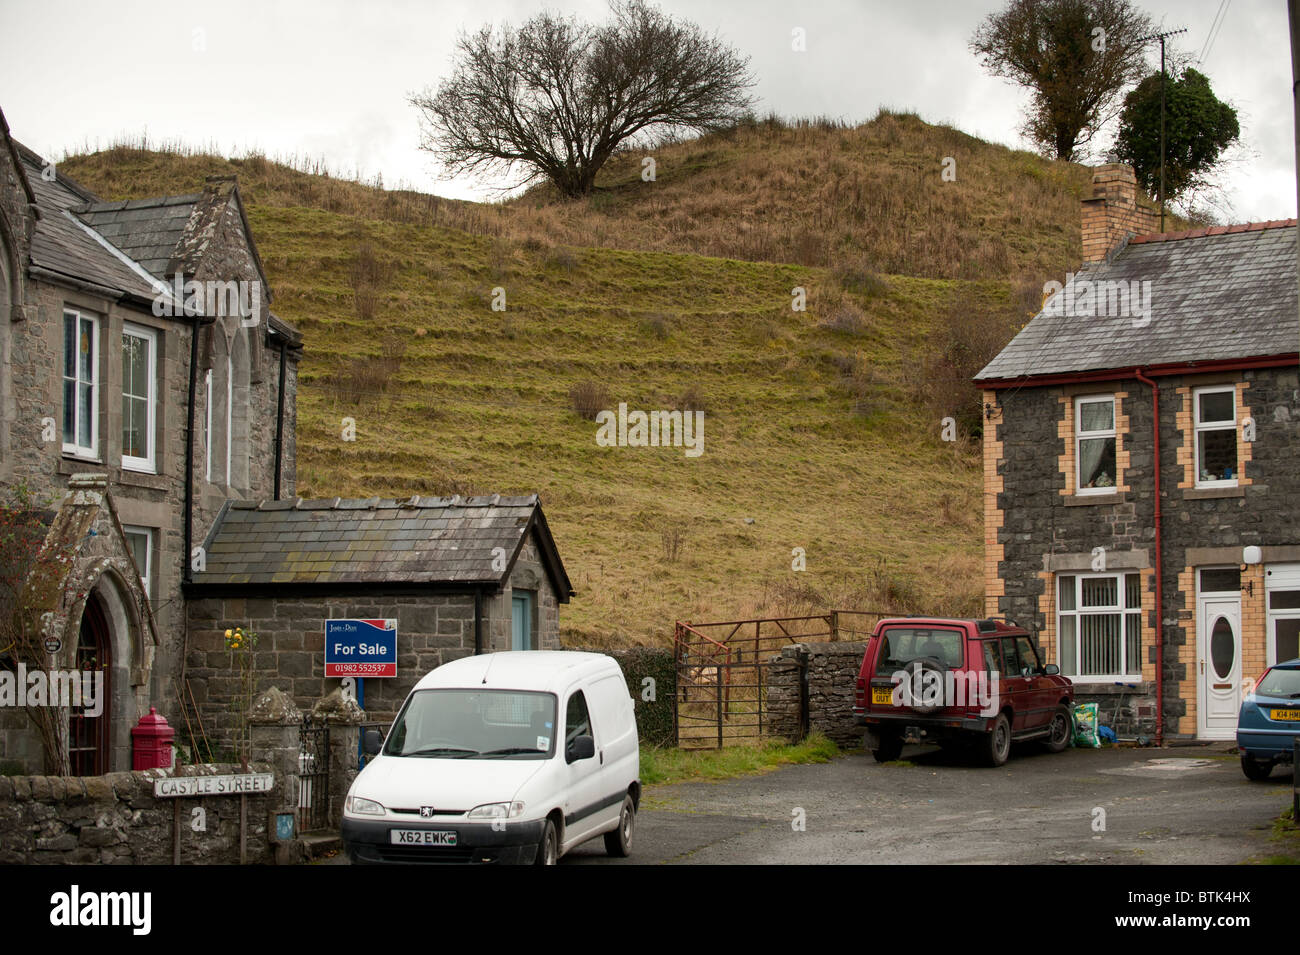 The remains of the Motte and Bailey castle in Builth Wells Powys wales UK - Stock Image